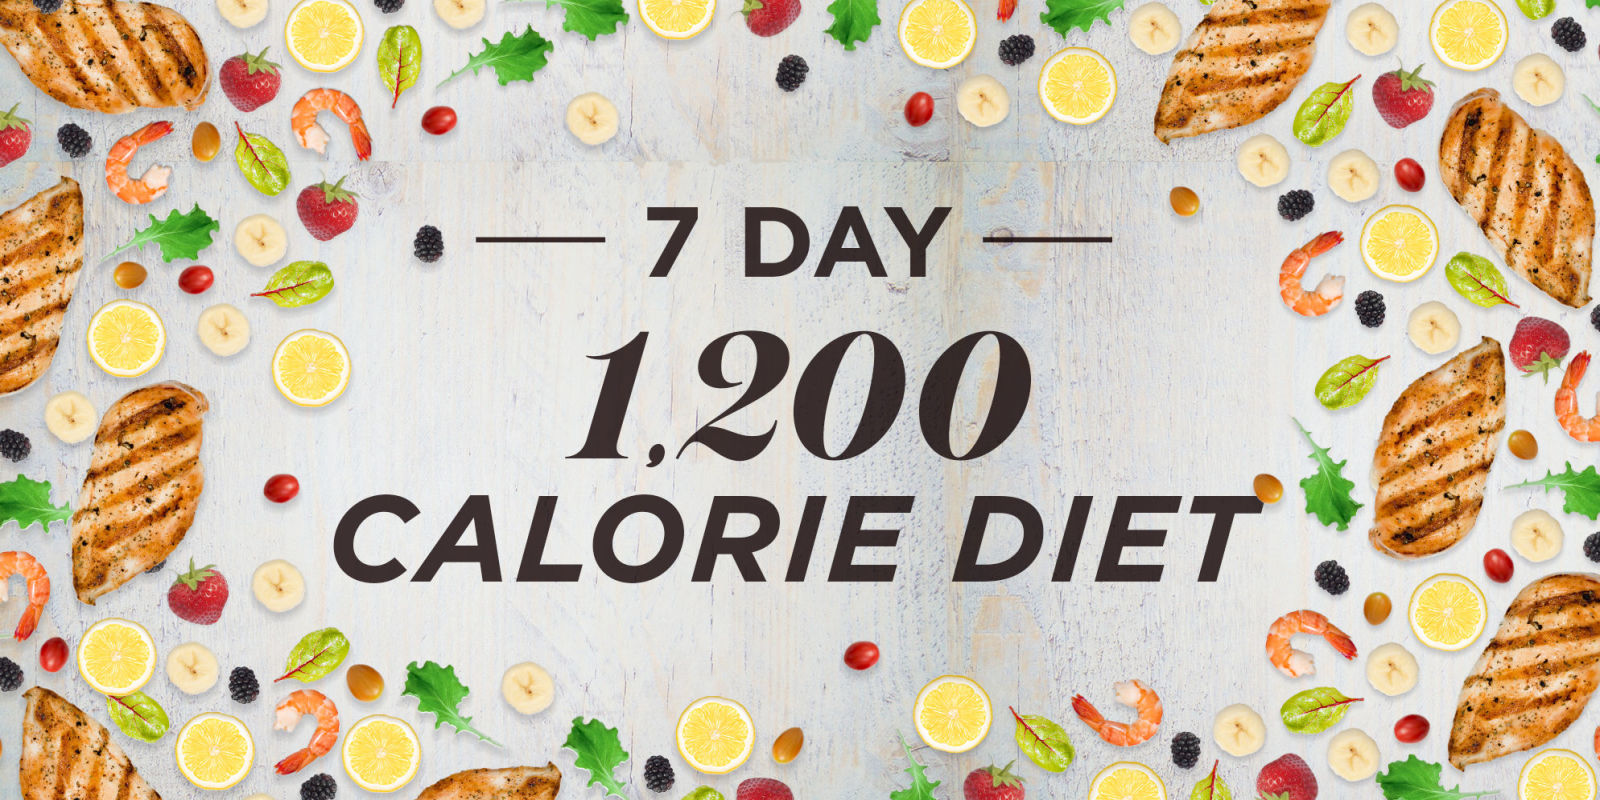 Calorie Diet Menu Day Lose Pounds Weight Loss Meal Plan - 1200 calorie meal plan for weight loss